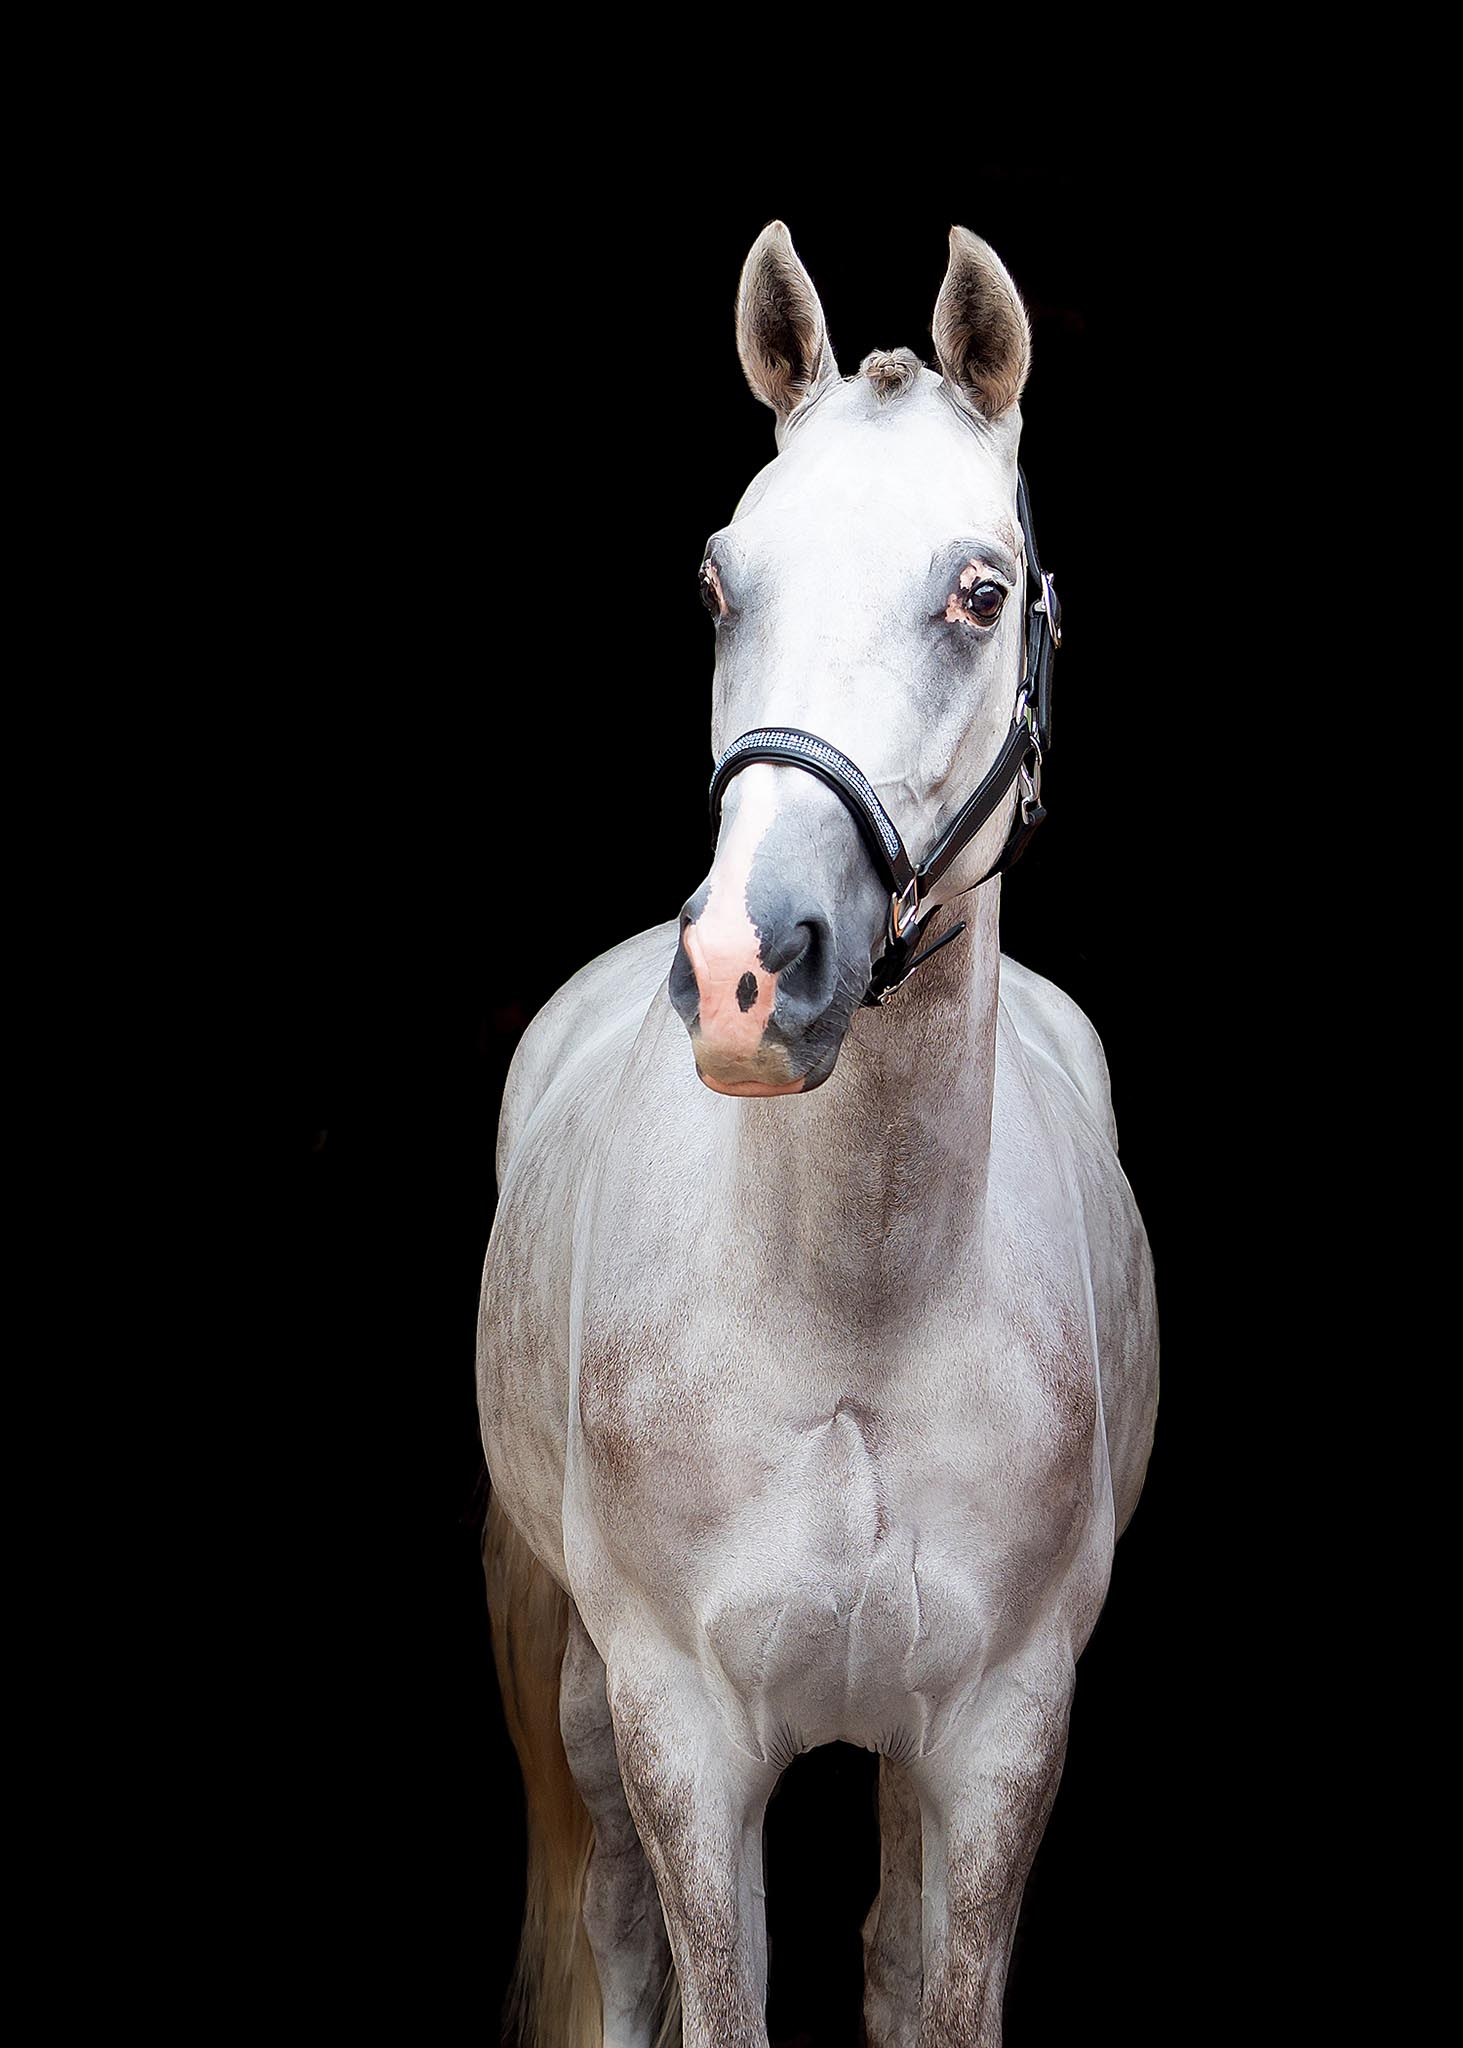 Equine-black-background-portrait.jpg